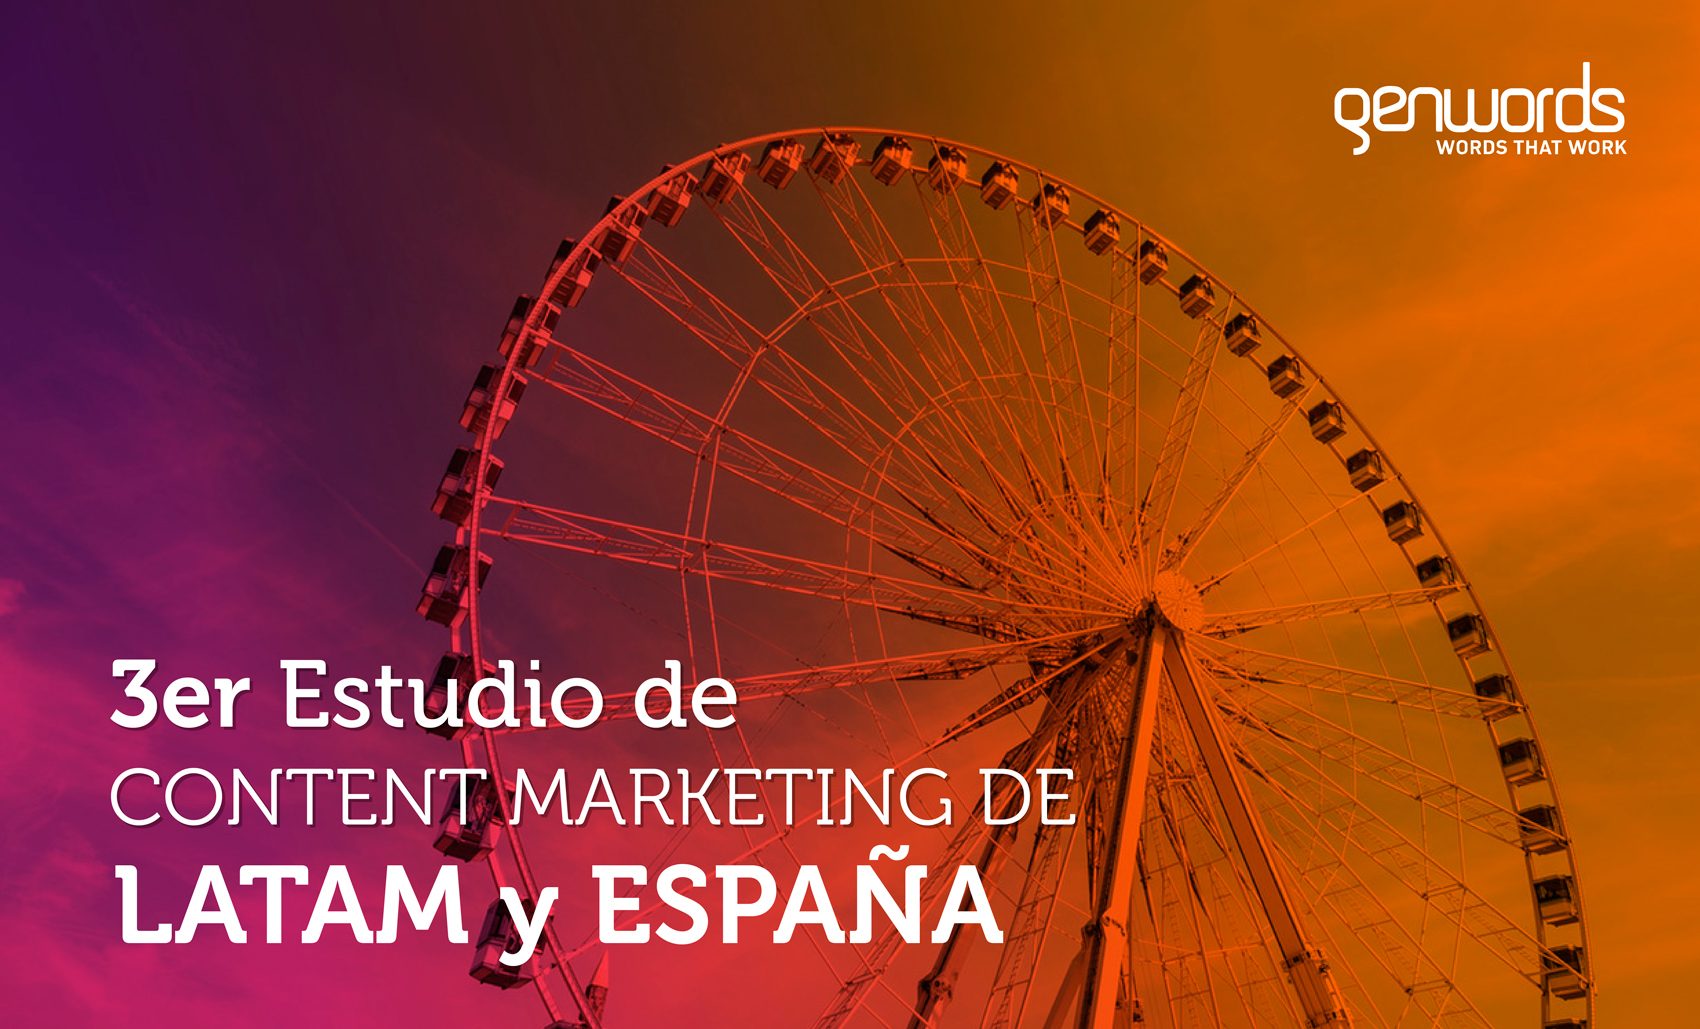 ESTUDIO DE CONTENT MARKETING